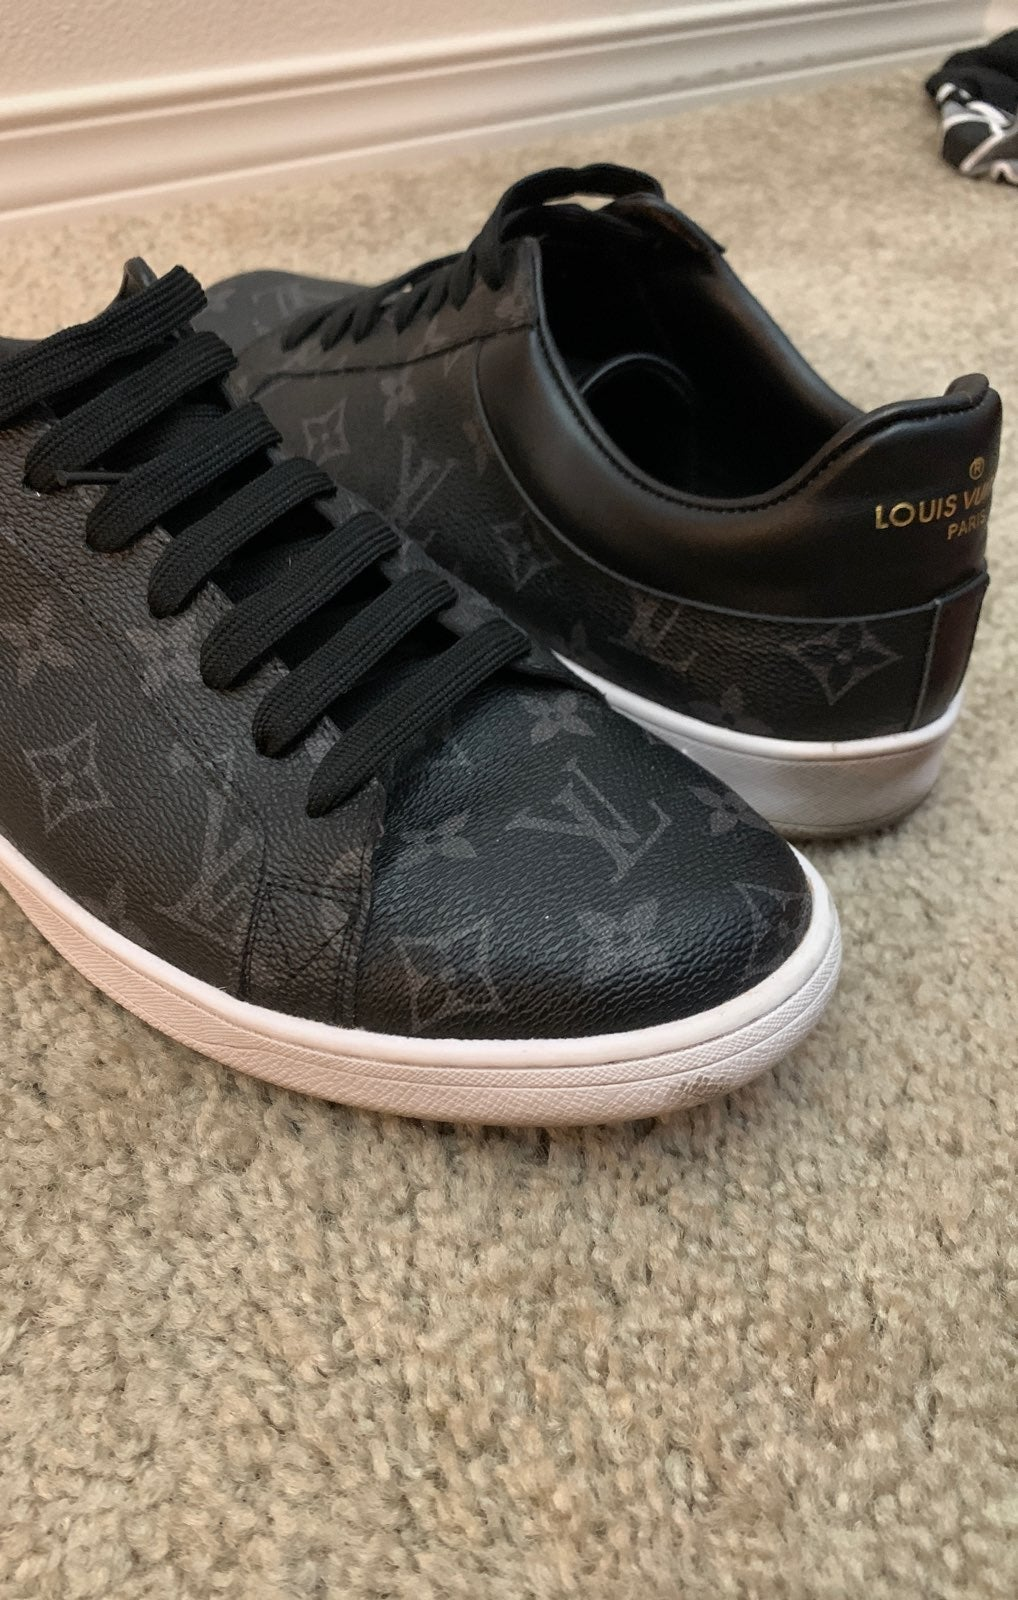 Black lv shoes men